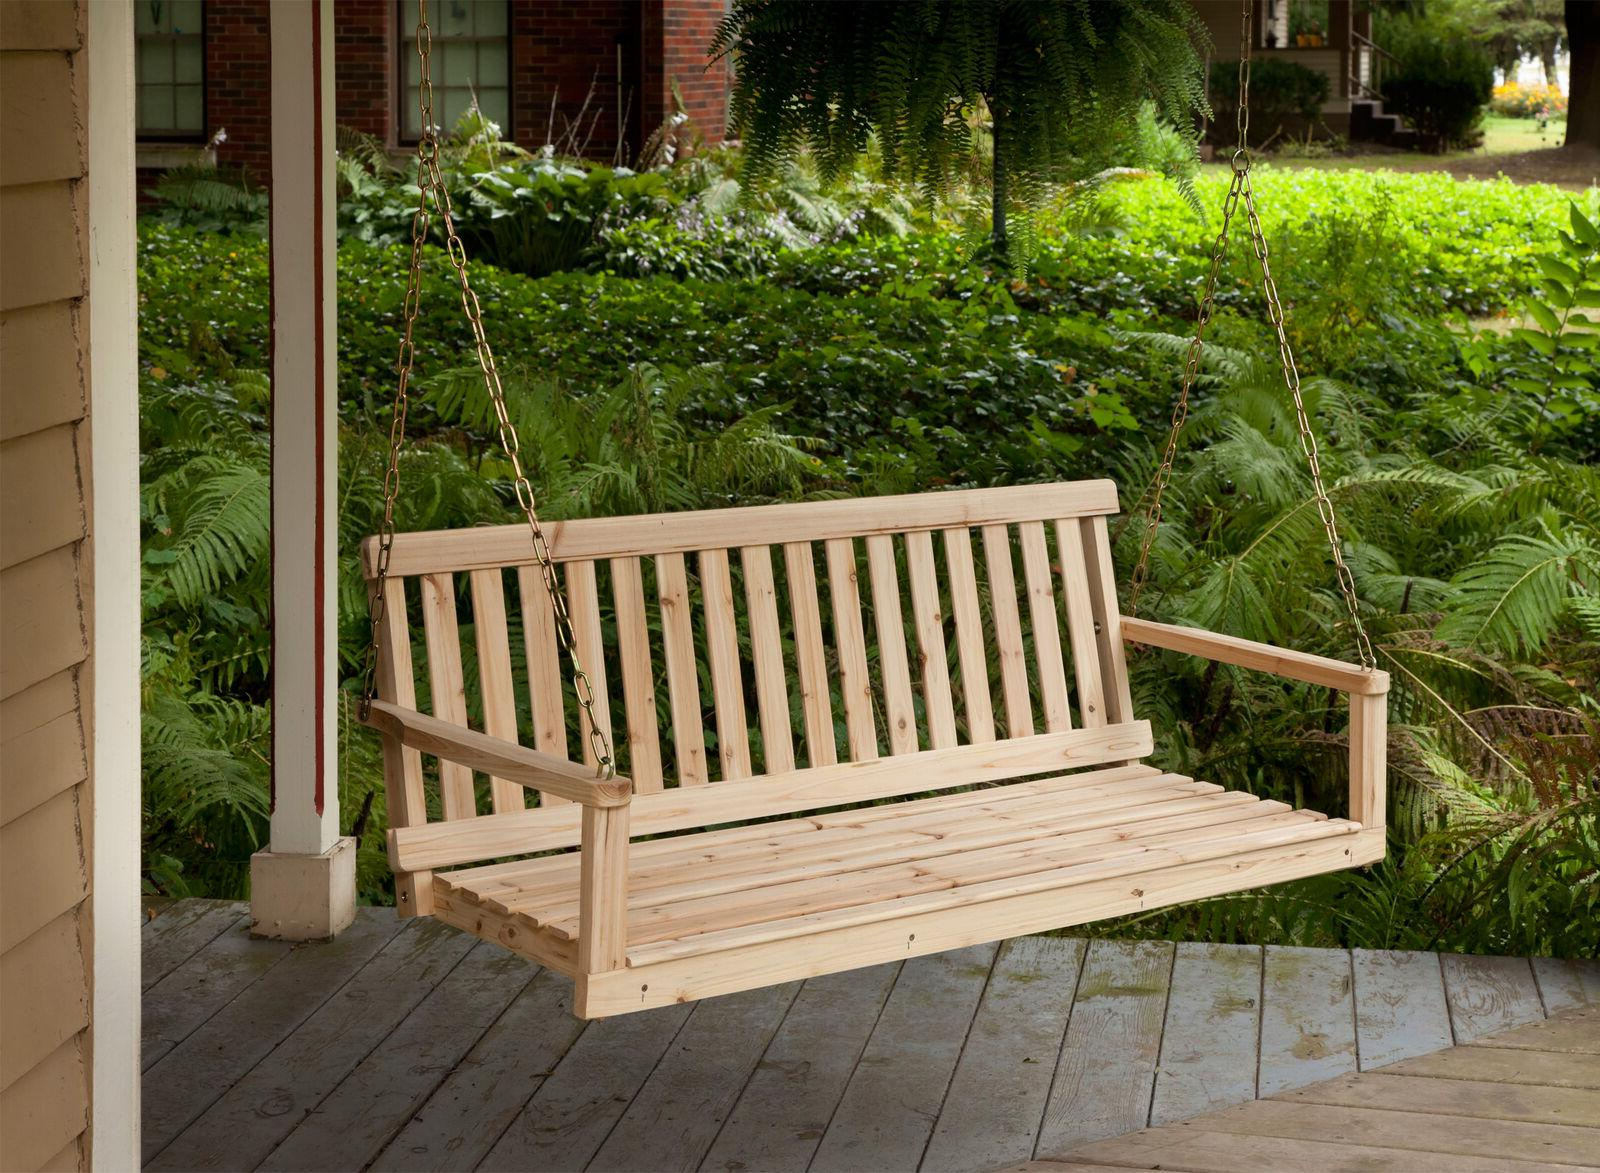 Wooden Porch Swing with Chains Wood Patio Outdoor Yard Garde